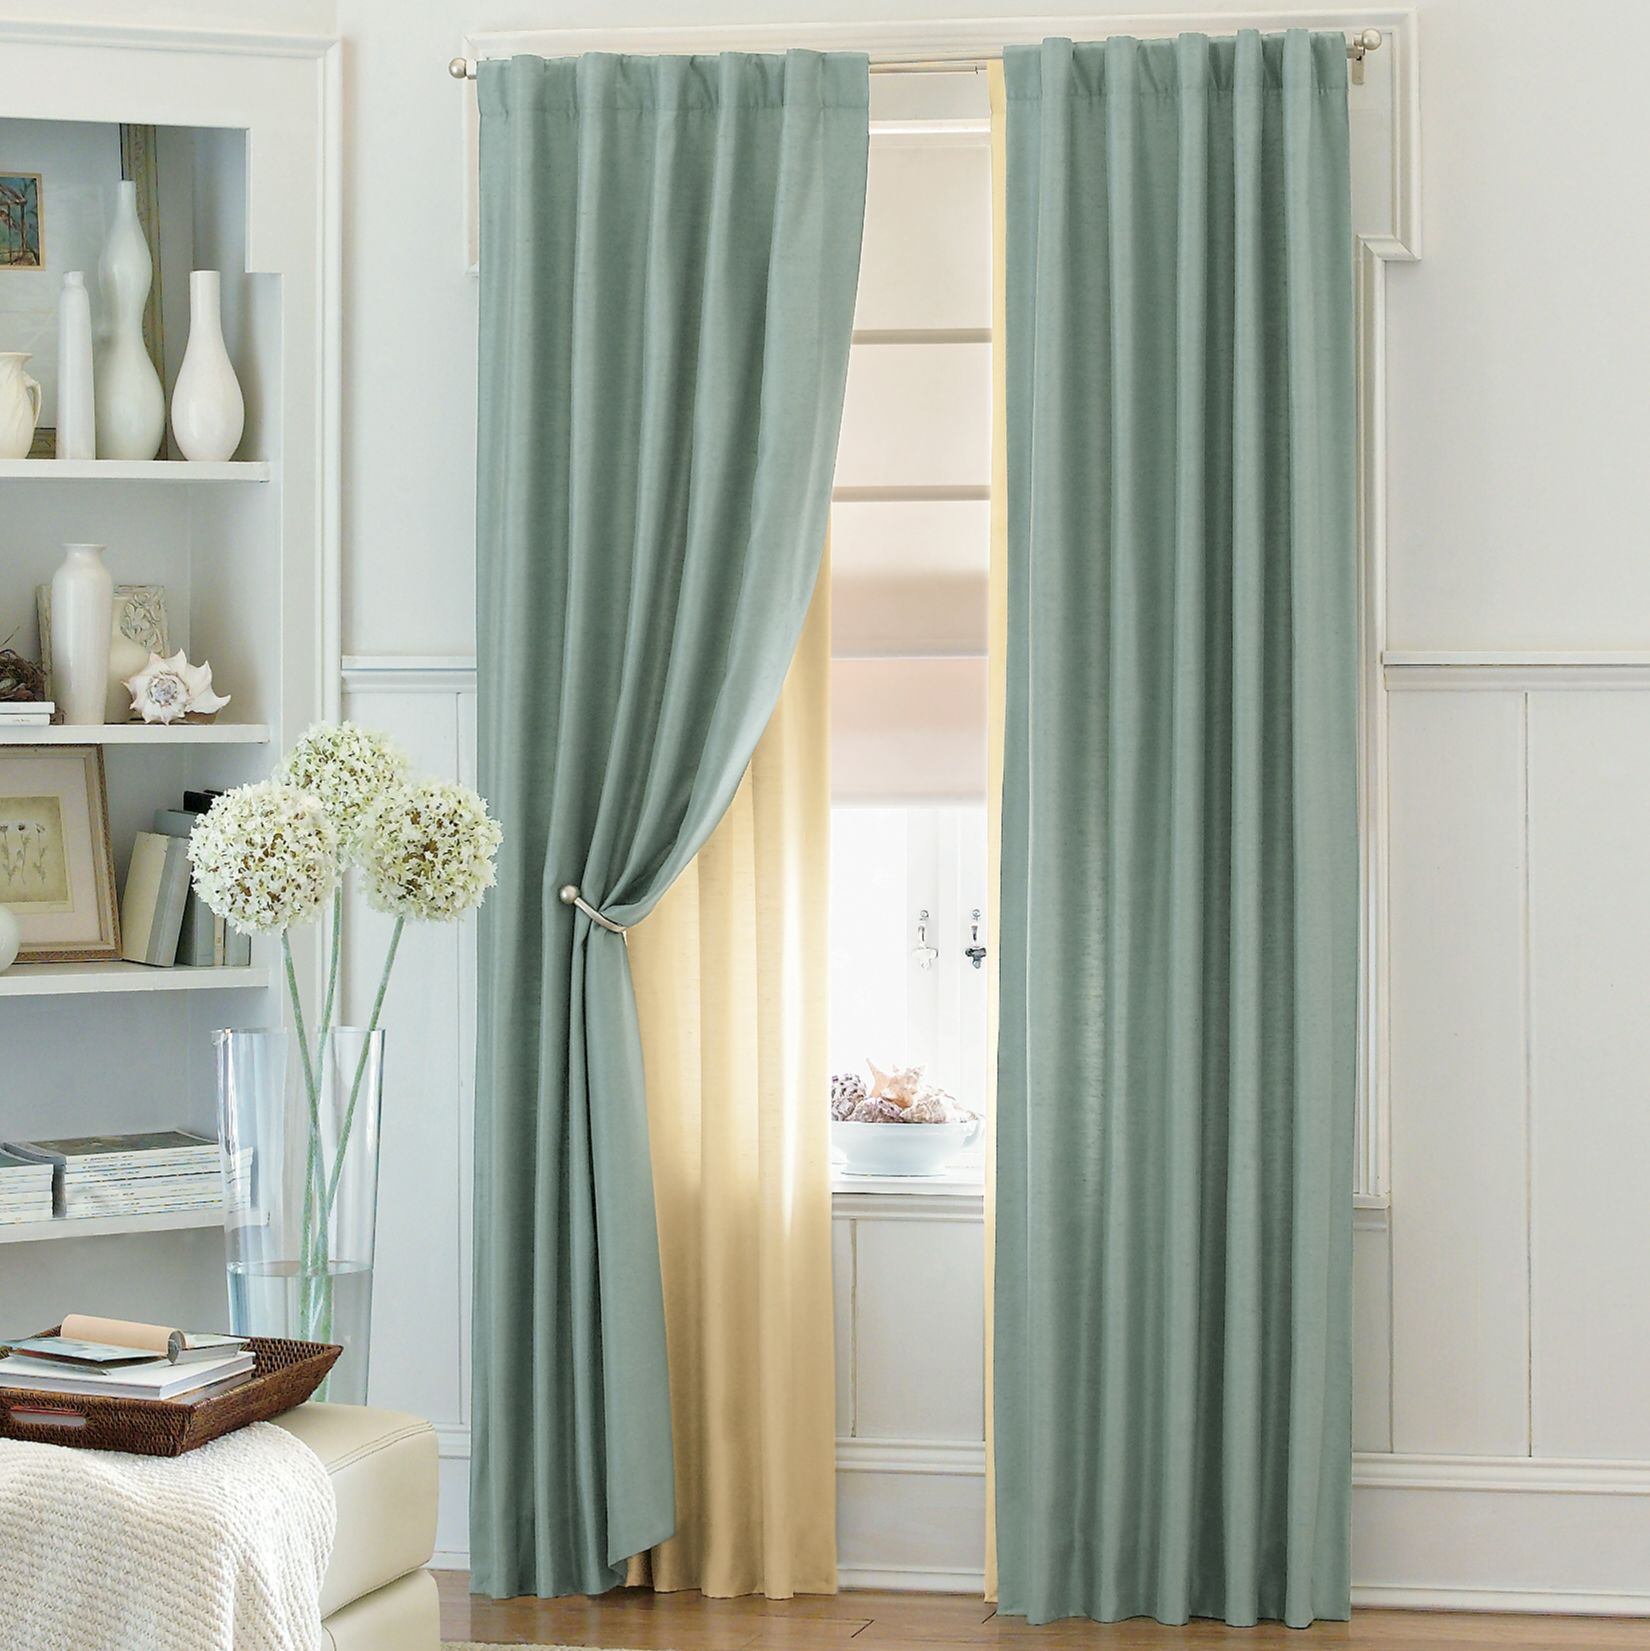 Sheer white bedroom curtains - Small White Window Curtains Modern Minimalist Green Silky Curtain Idea For Small Window With Sheer